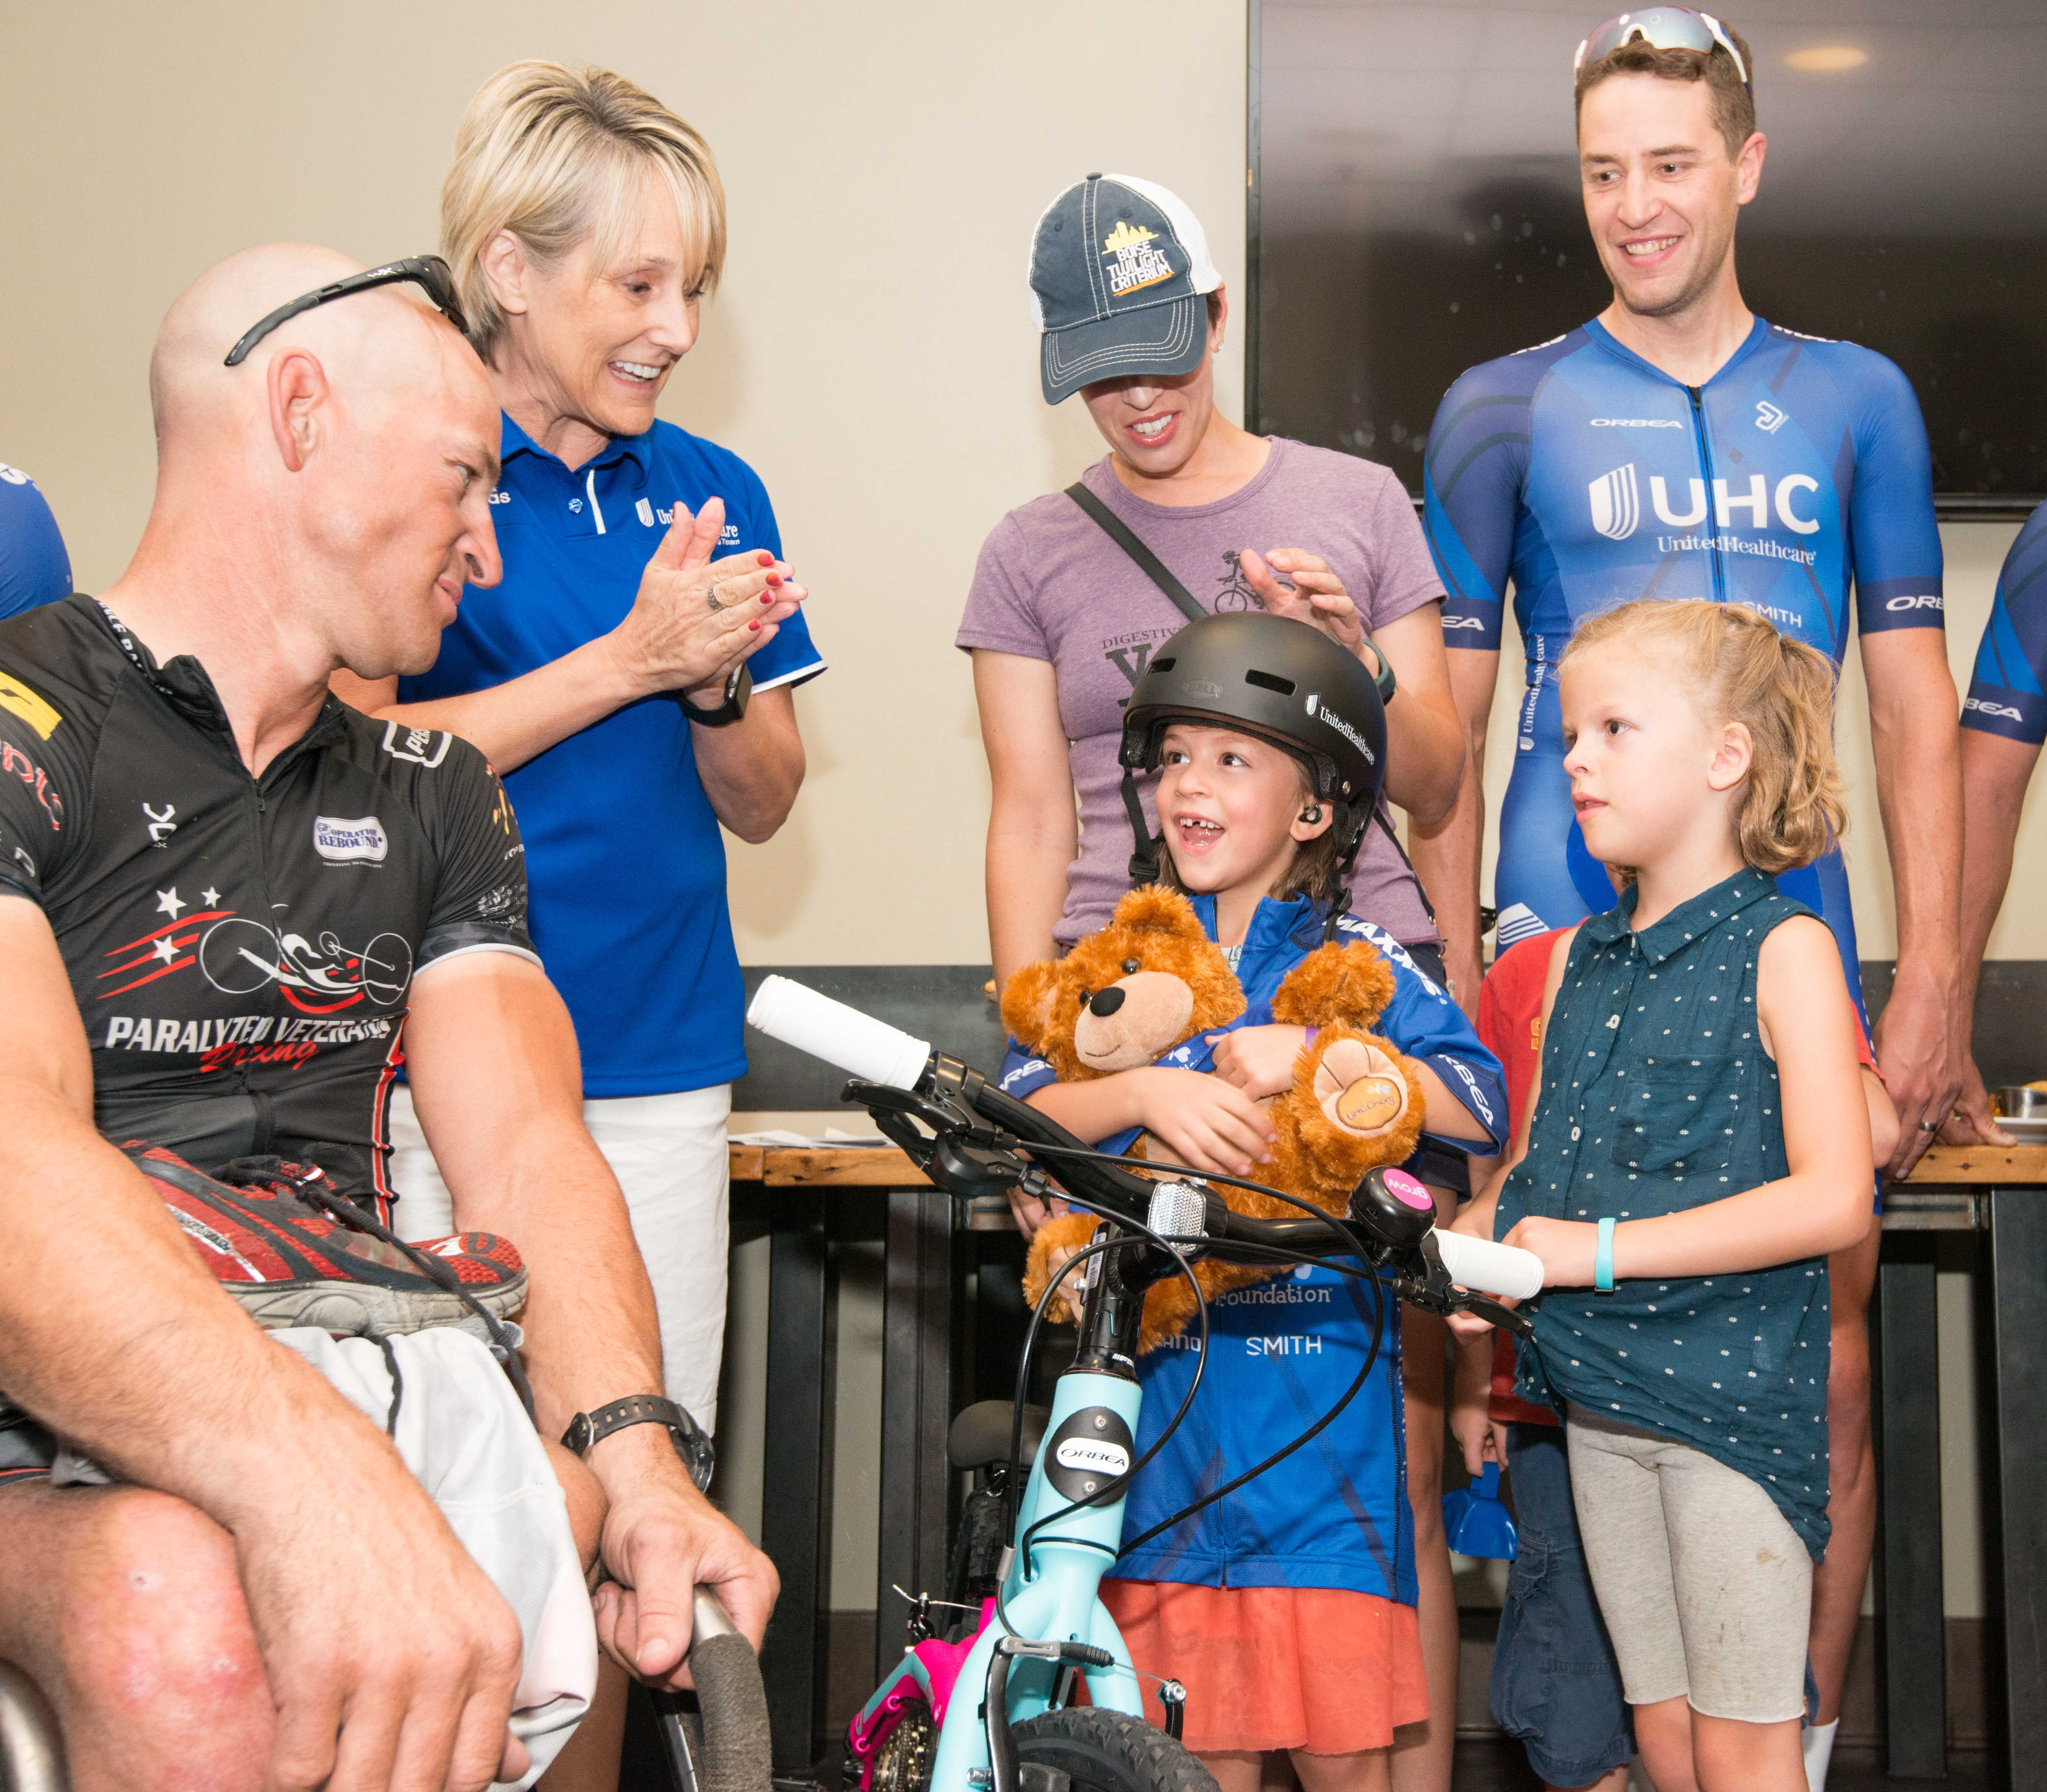 Six-year-old Reagan Cornwall was joined by her sister Ruby and her parents Morgan and Craig when UnitedHealthcare executive Pam Gold and Pro Cycling Team member Adrian Hegyvary surprised her with a brand-new bike, helmet, UHC Pro Cycling team jersey and an opportunity to participate in the cycling event by riding along in the official pace car (Photo: Chad Case Photography).